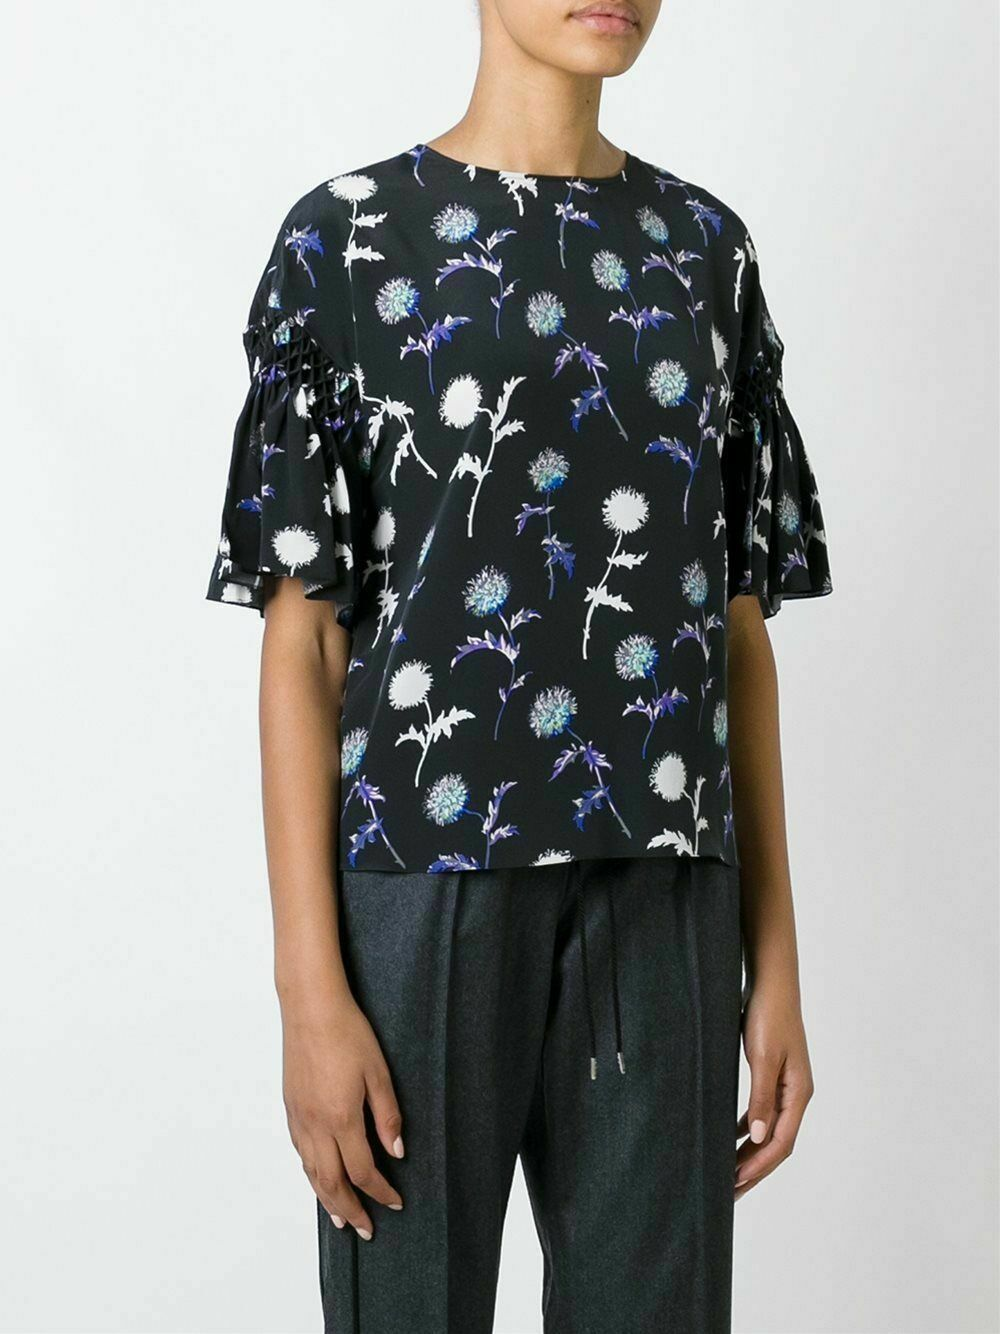 Kenzo Dandelion Print Silk Top, size 38 - New with tags, RRP